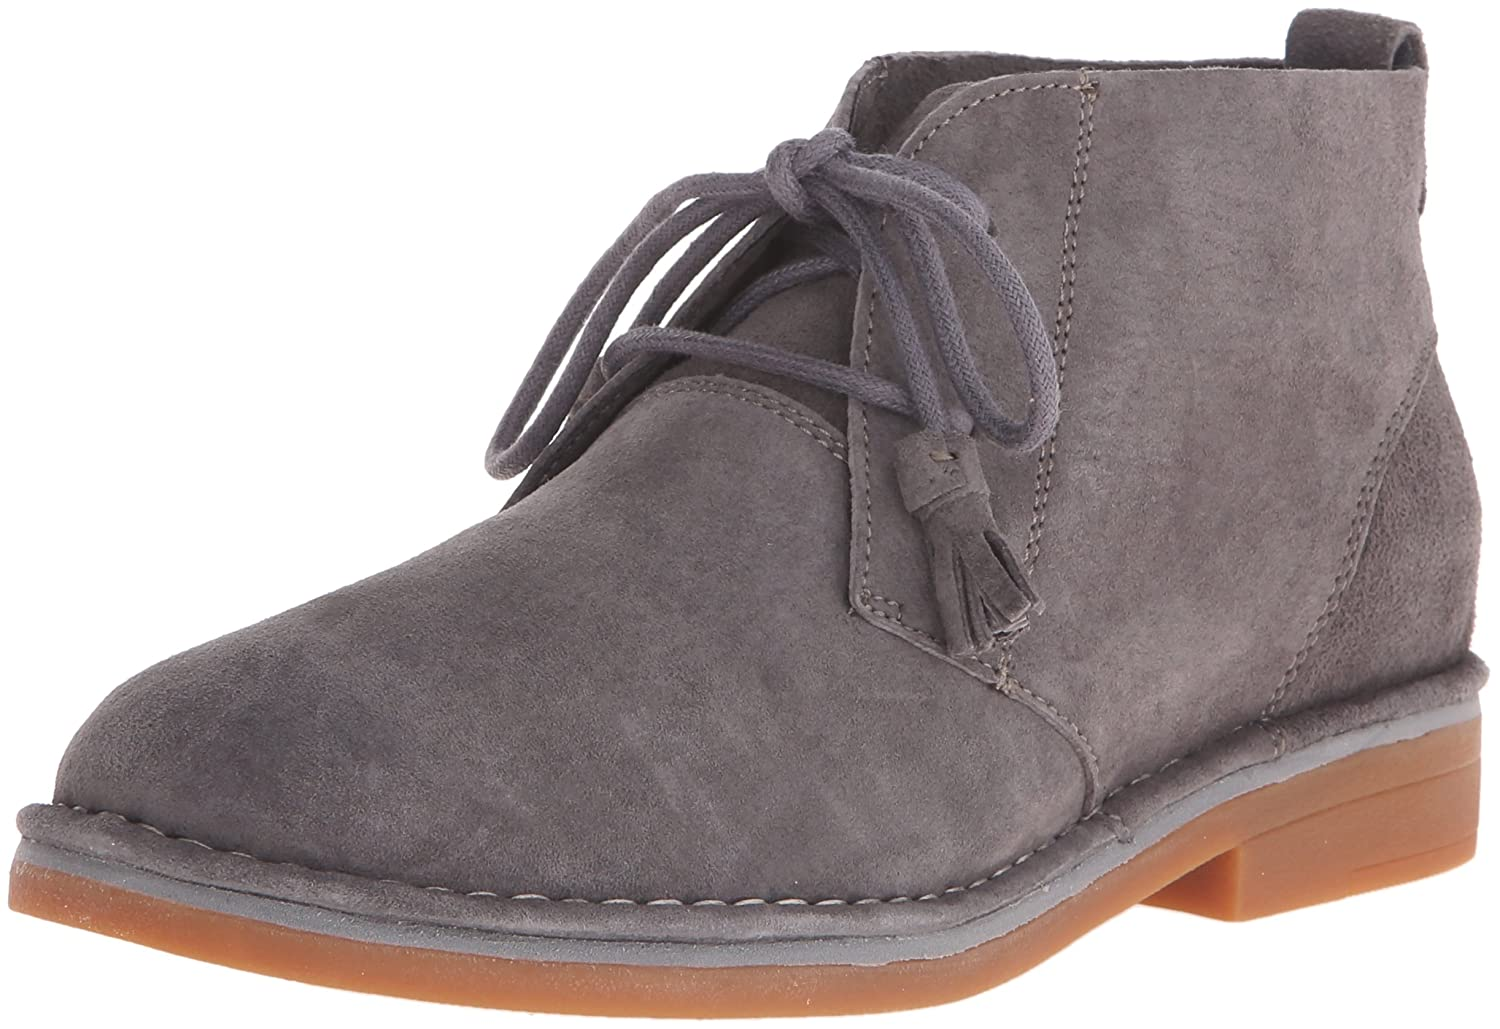 Hush Puppies Women's Cyra Catelyn Boot B010TKSLXS 8.5 B(M) US|Smoke Suede